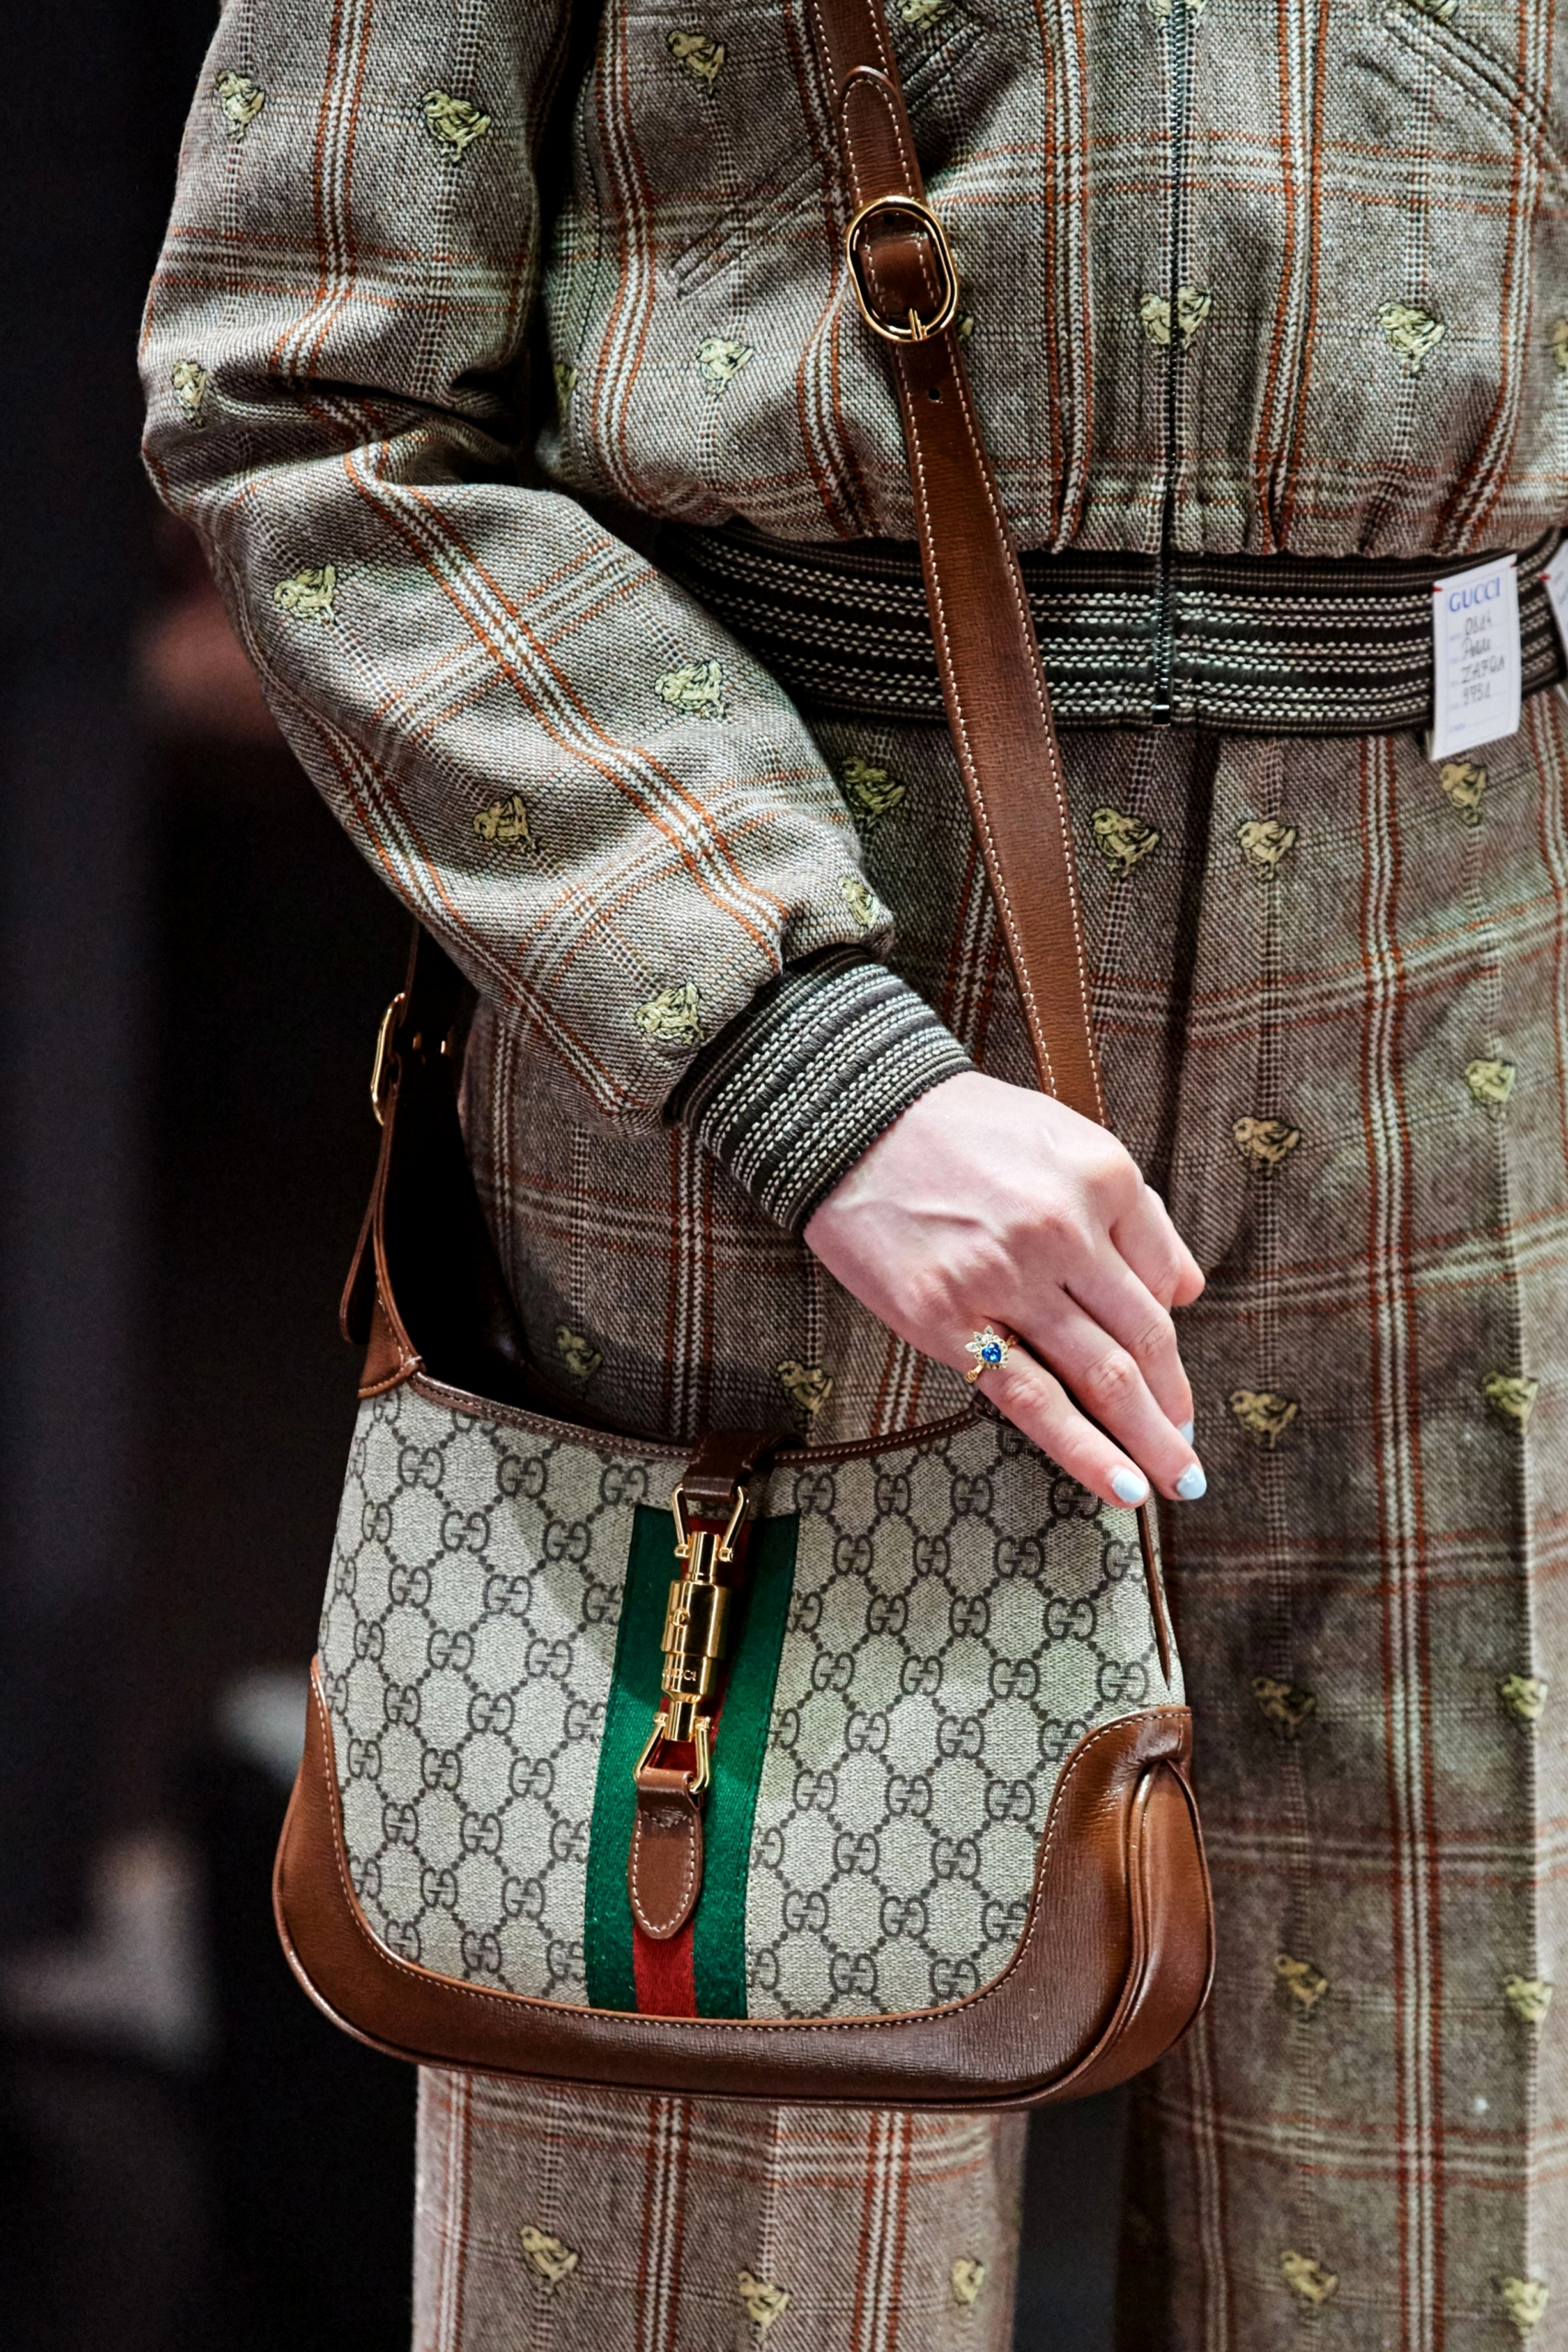 Детали коллекции Gucci Fall/Winter 2020 Ready-to-Wear